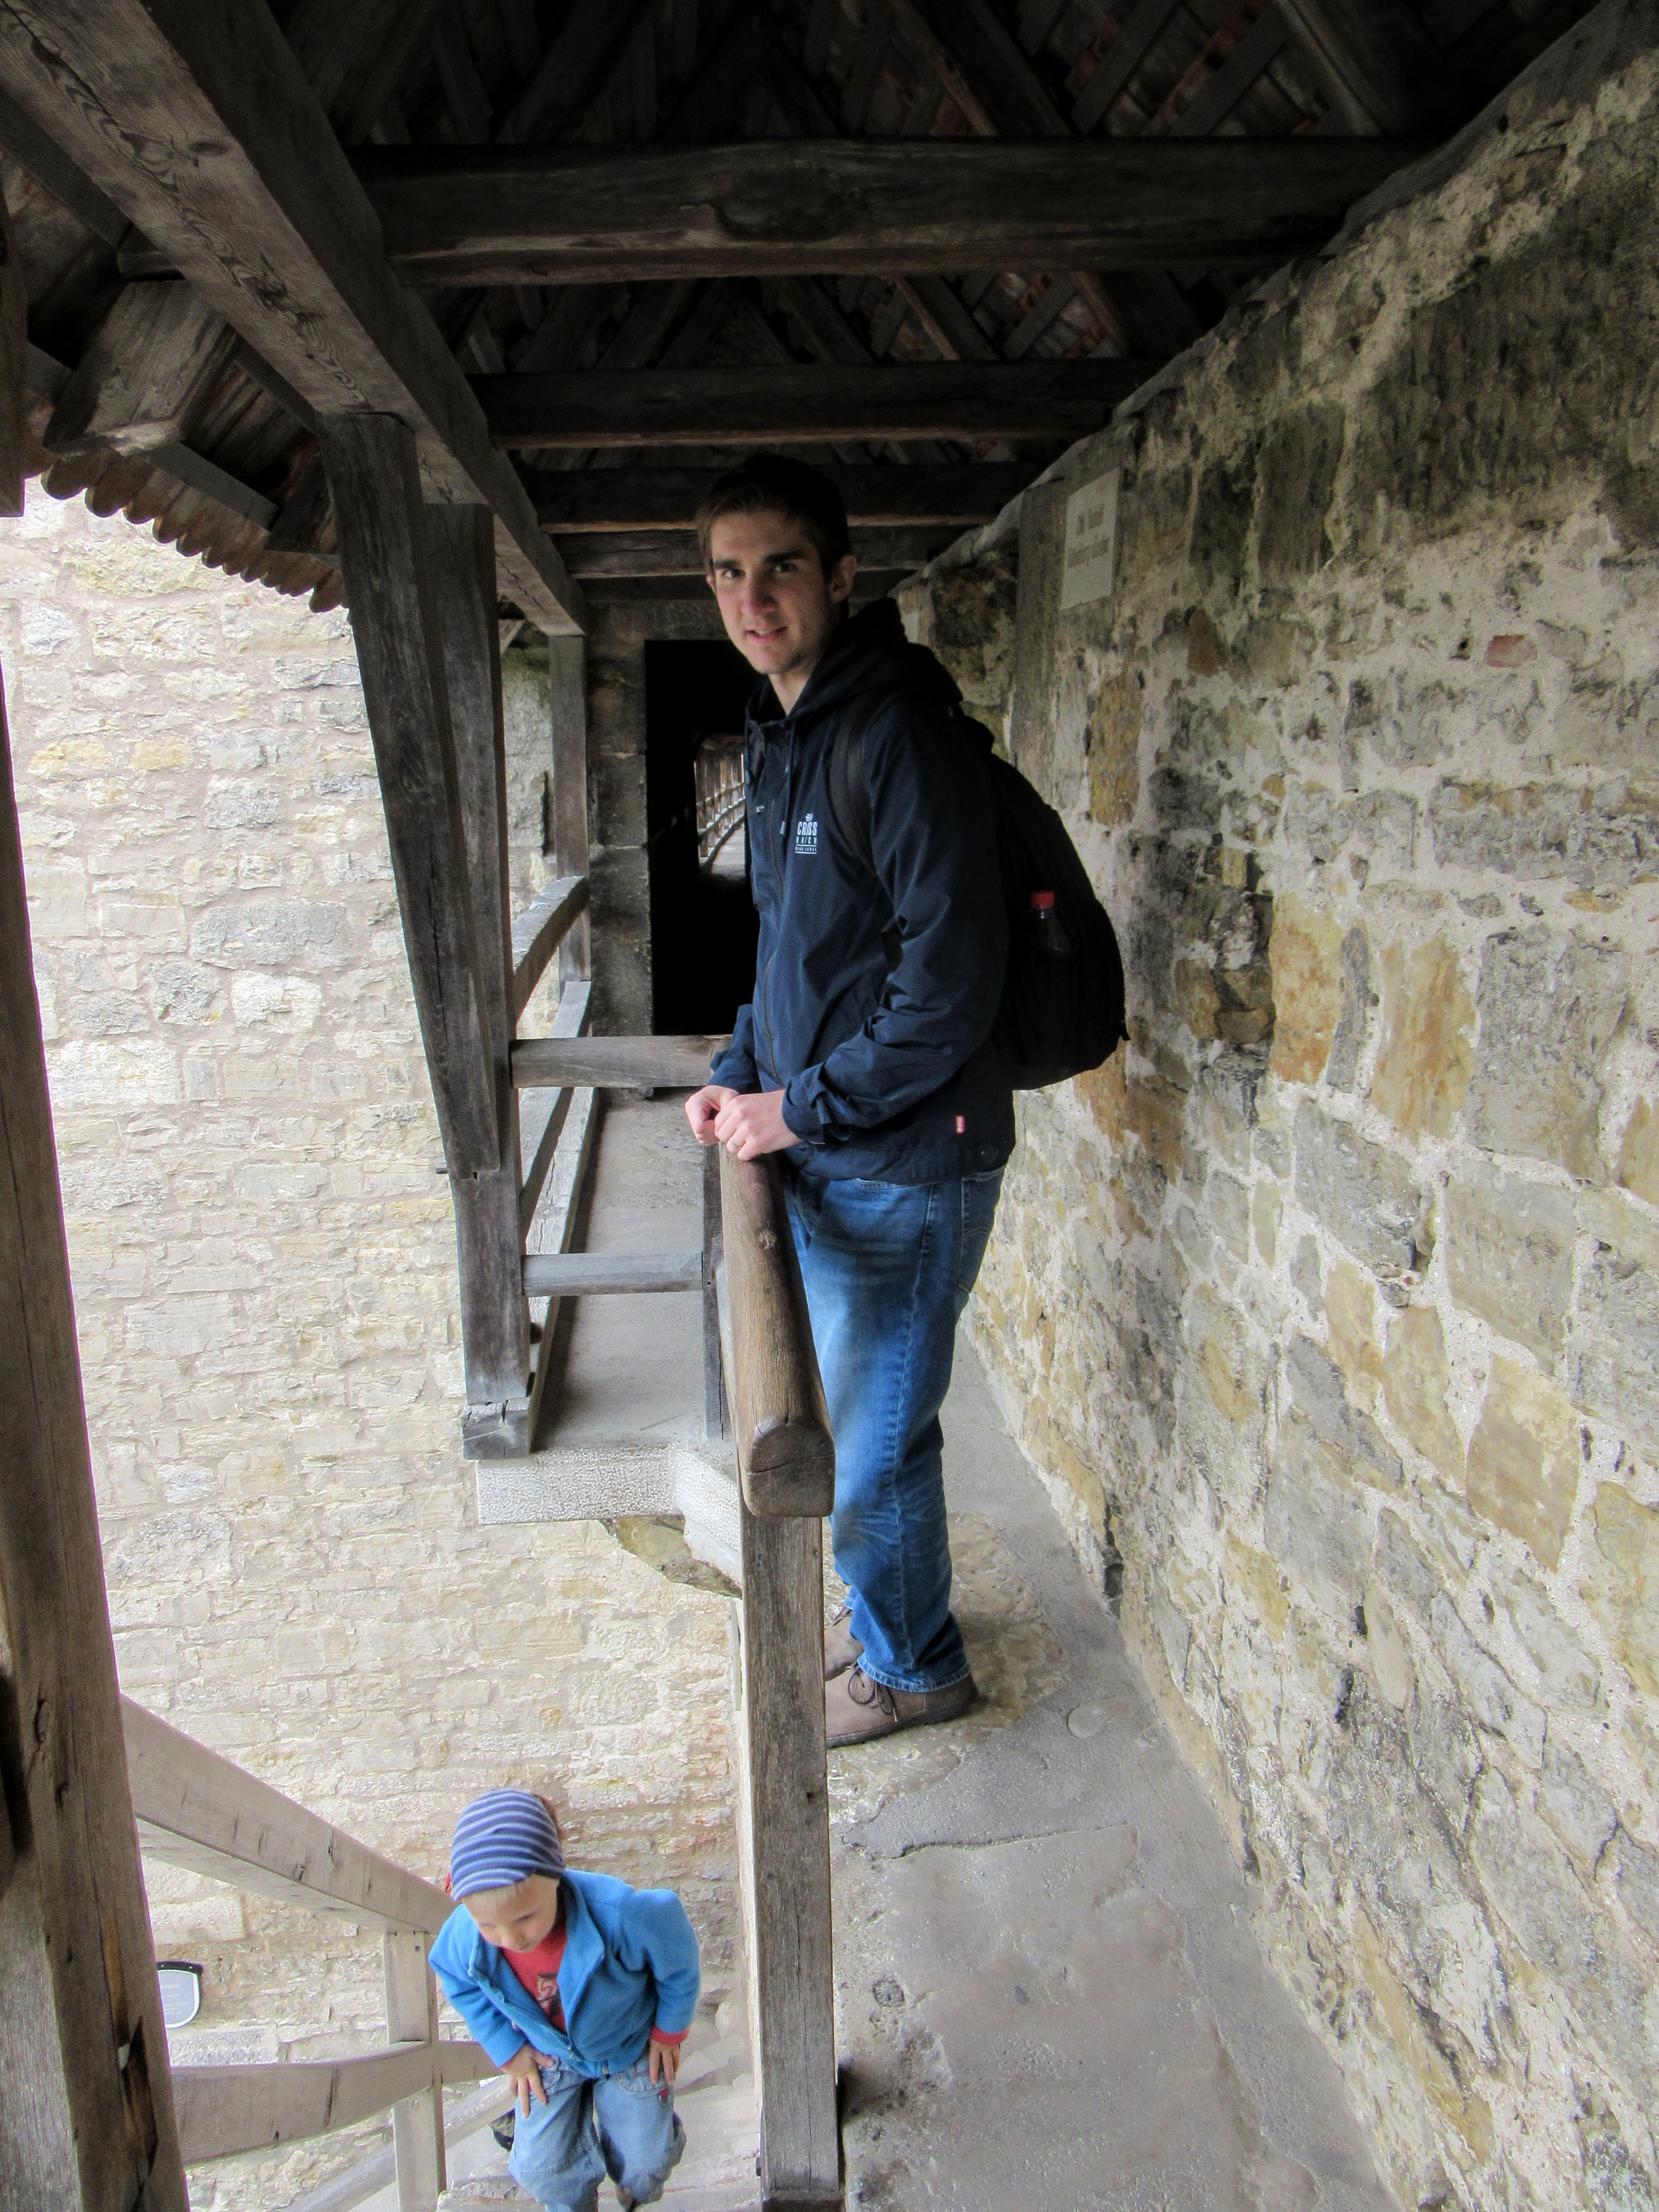 Mr. Meena in a narrow gap along the path. | Walking Along the Wall of Rothenburg ob der Tauber.